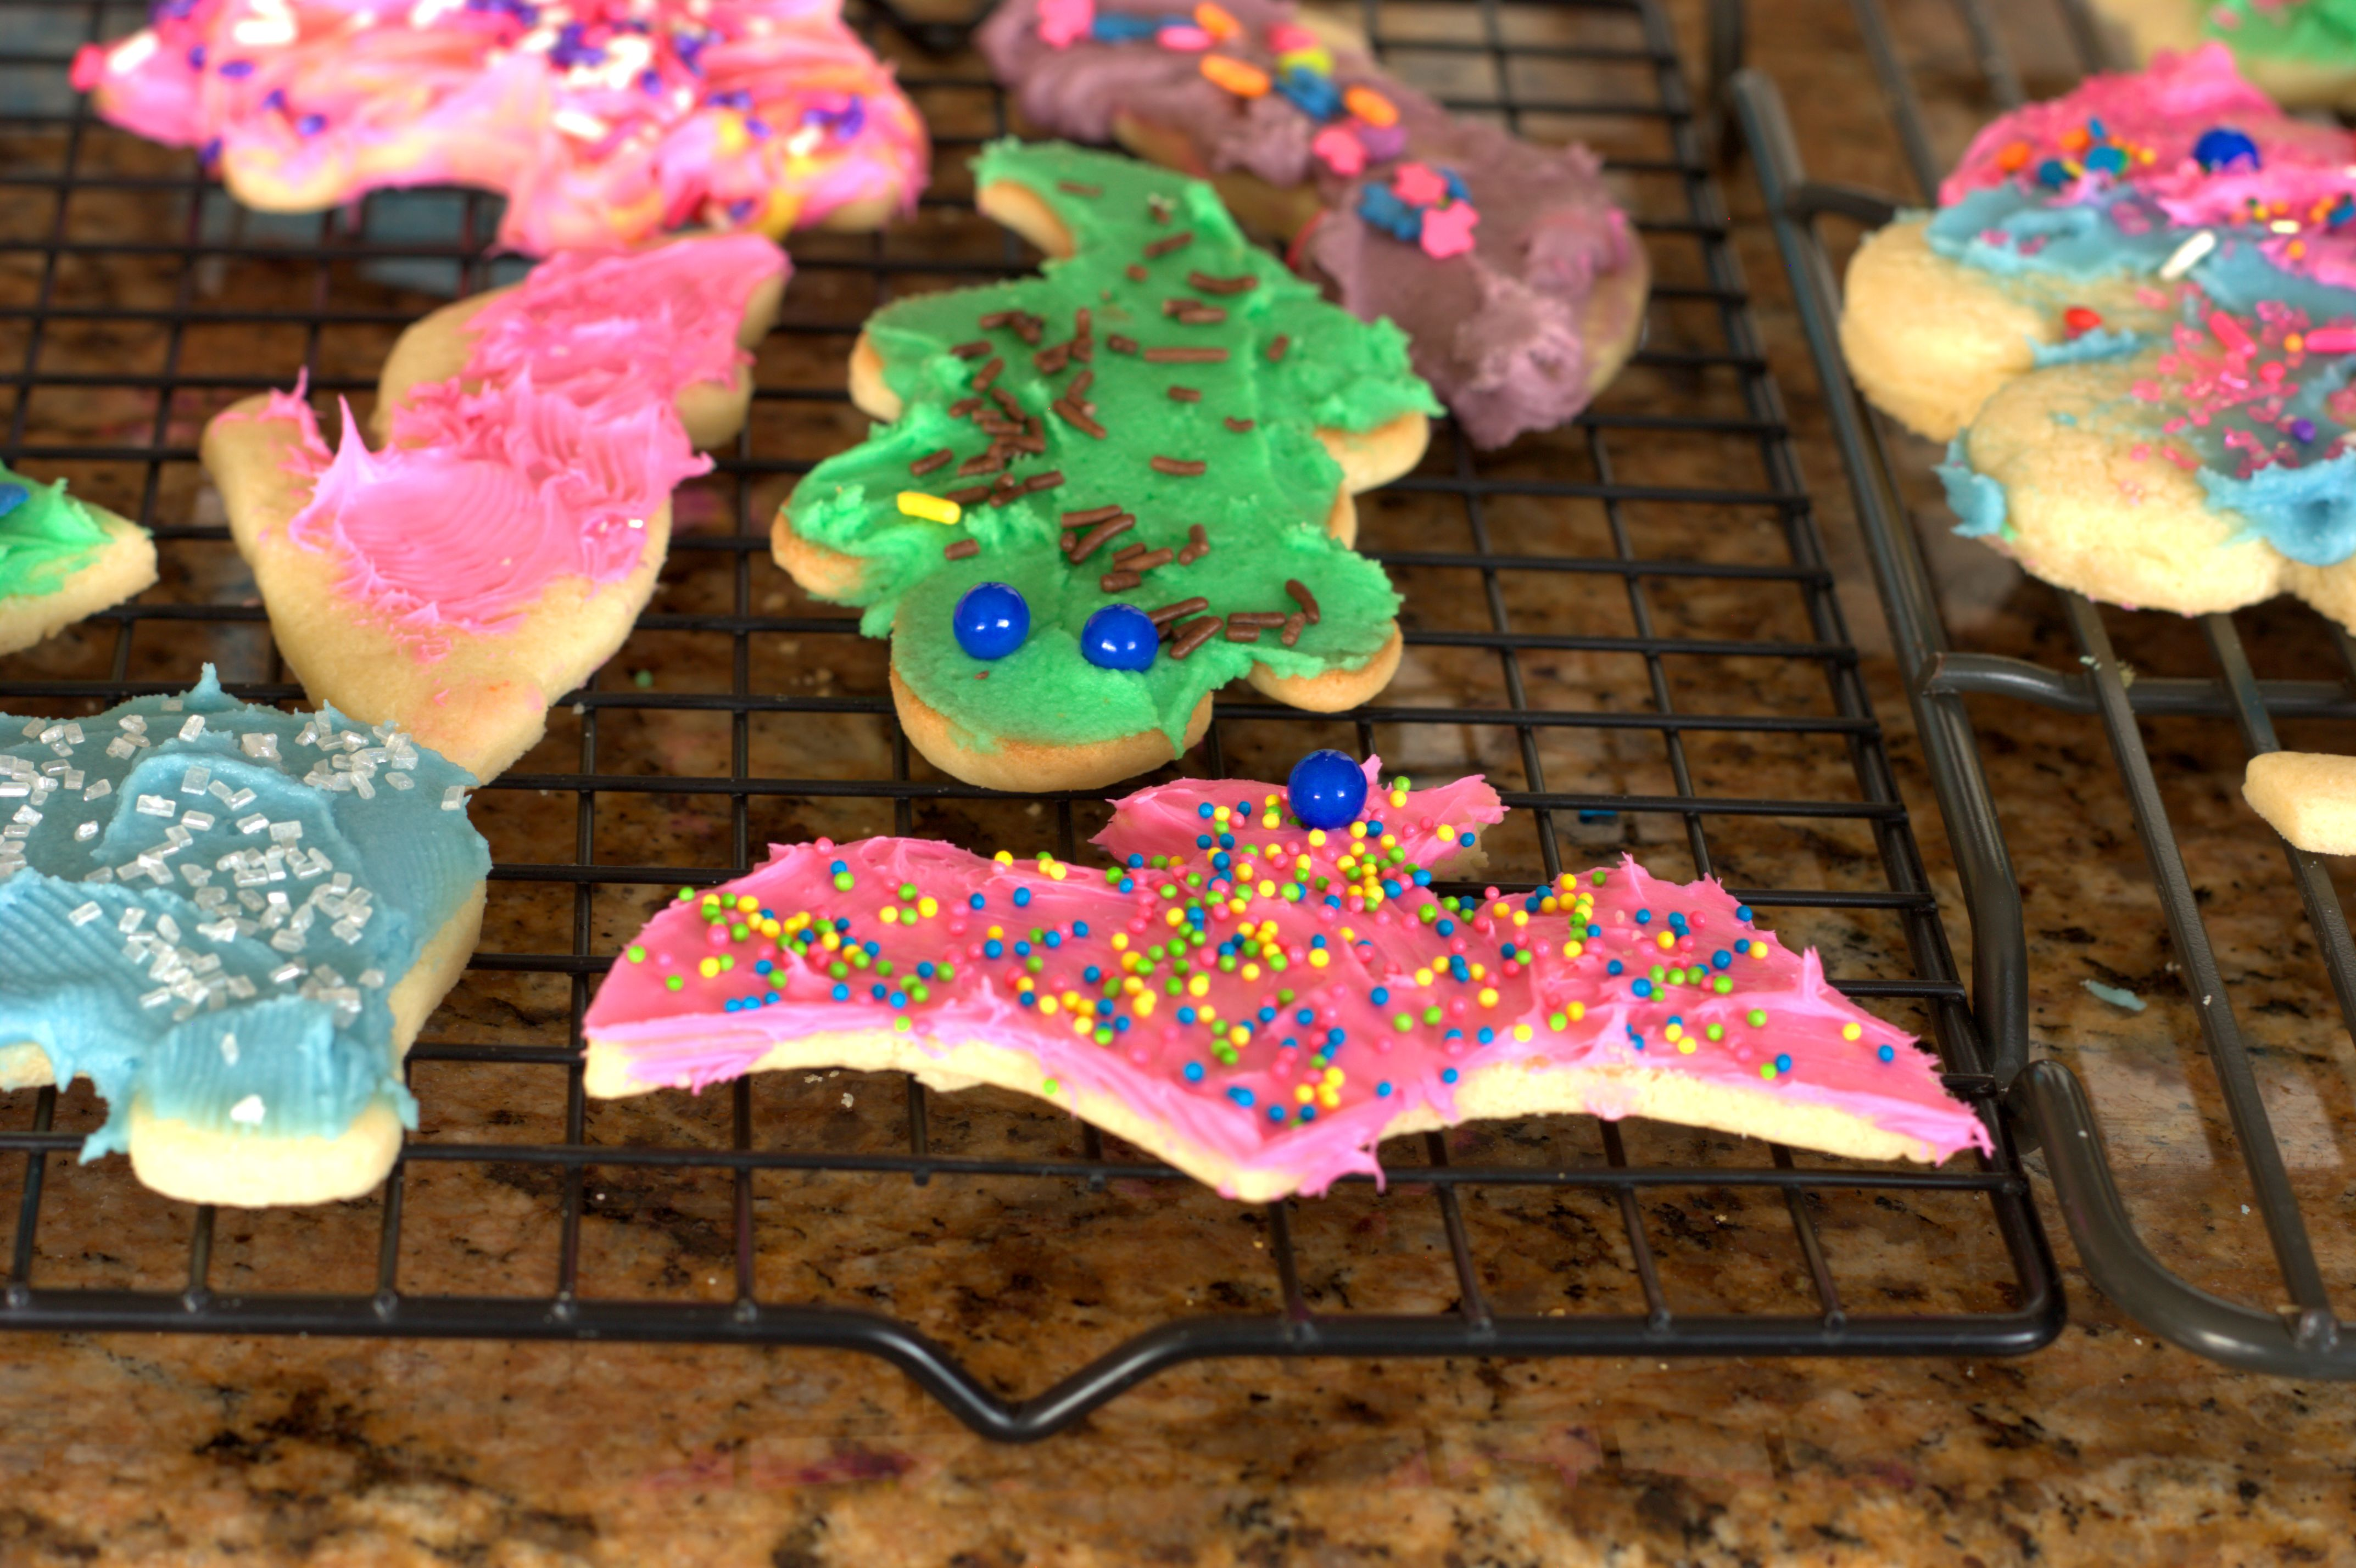 sugar cookie decorating birthday party - Sugar Cookie Decorating